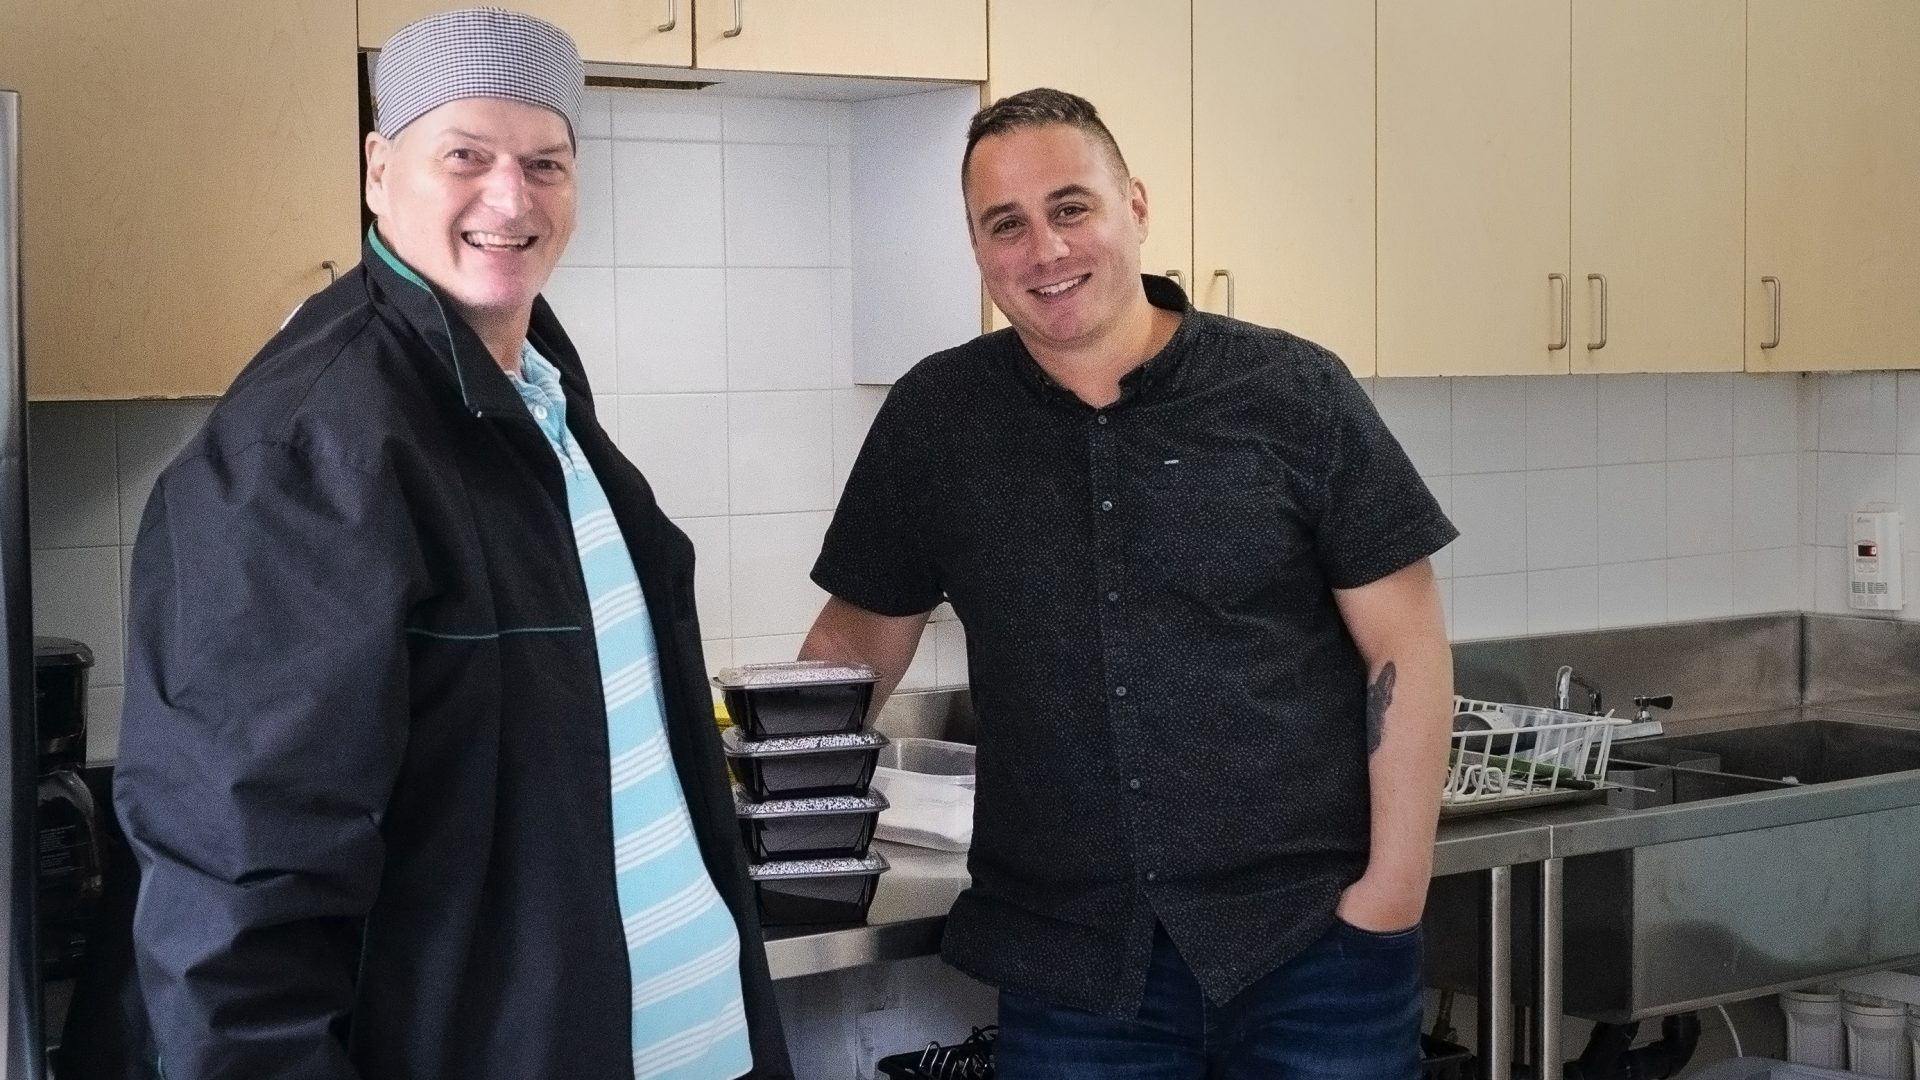 Chef Al and Manager Ryan, New Catering Service at Cota's Safe Beds location